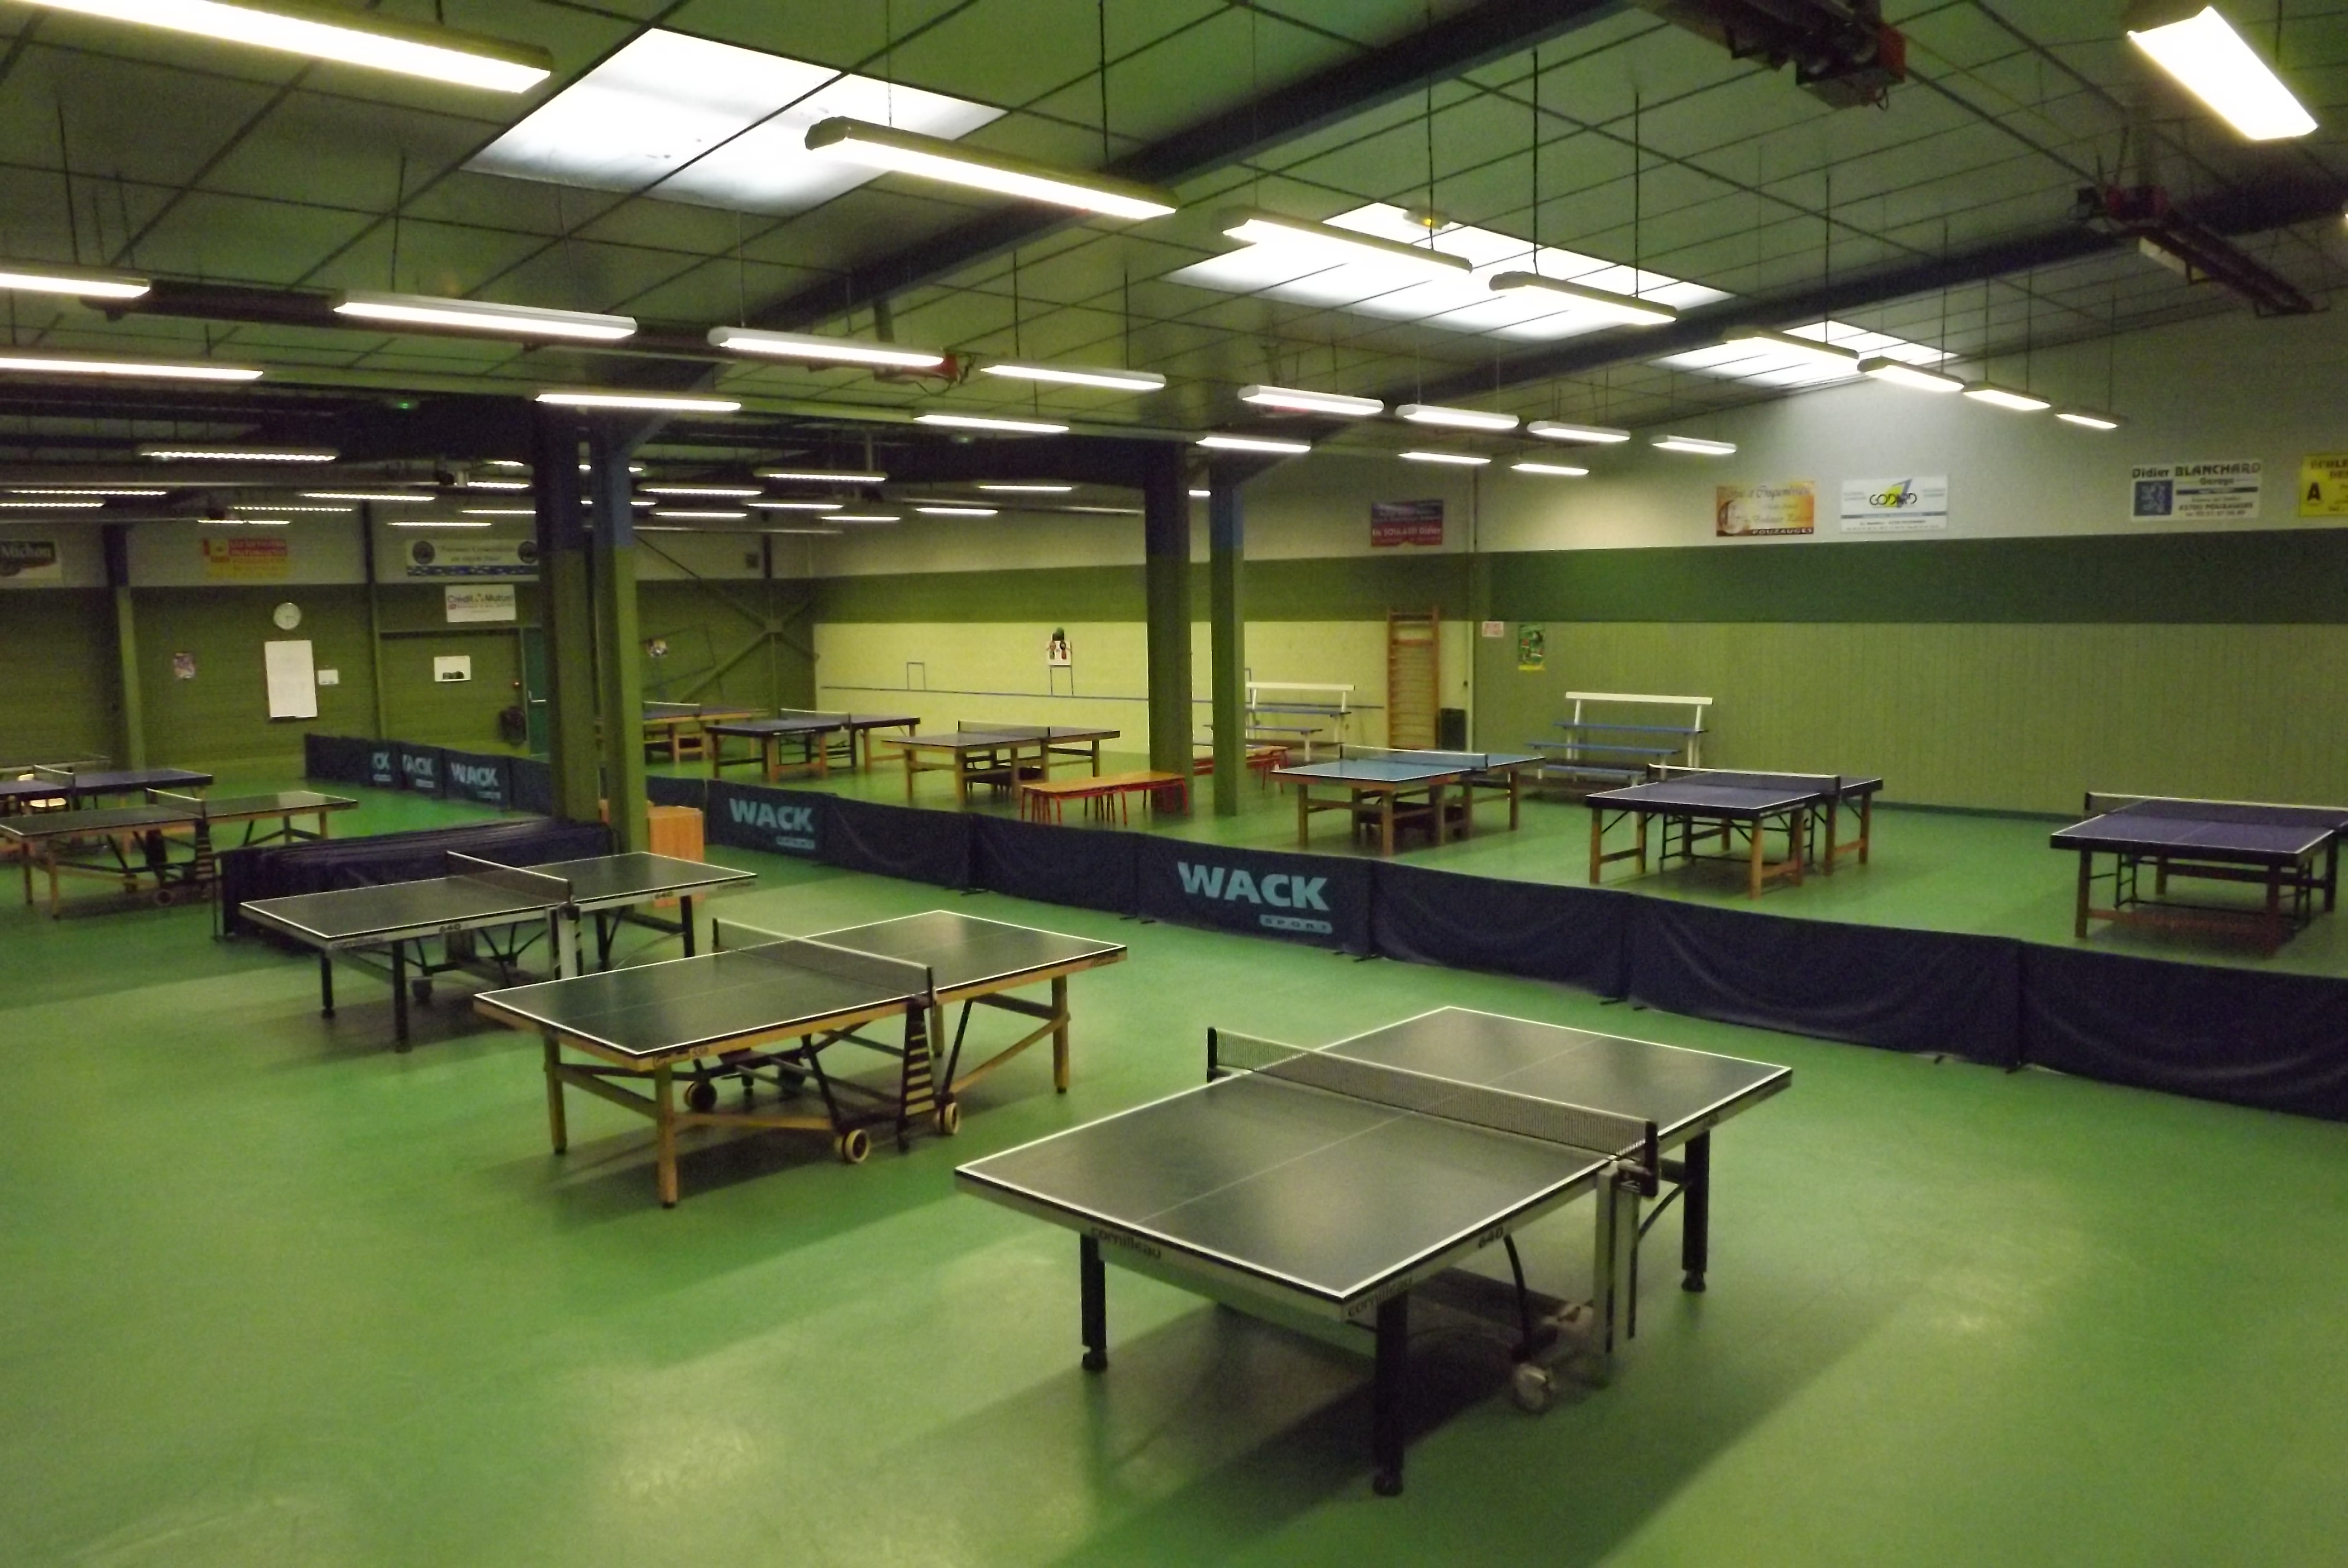 Wack Sport Tennis De Table Pouzauges Ac Tennis De Table